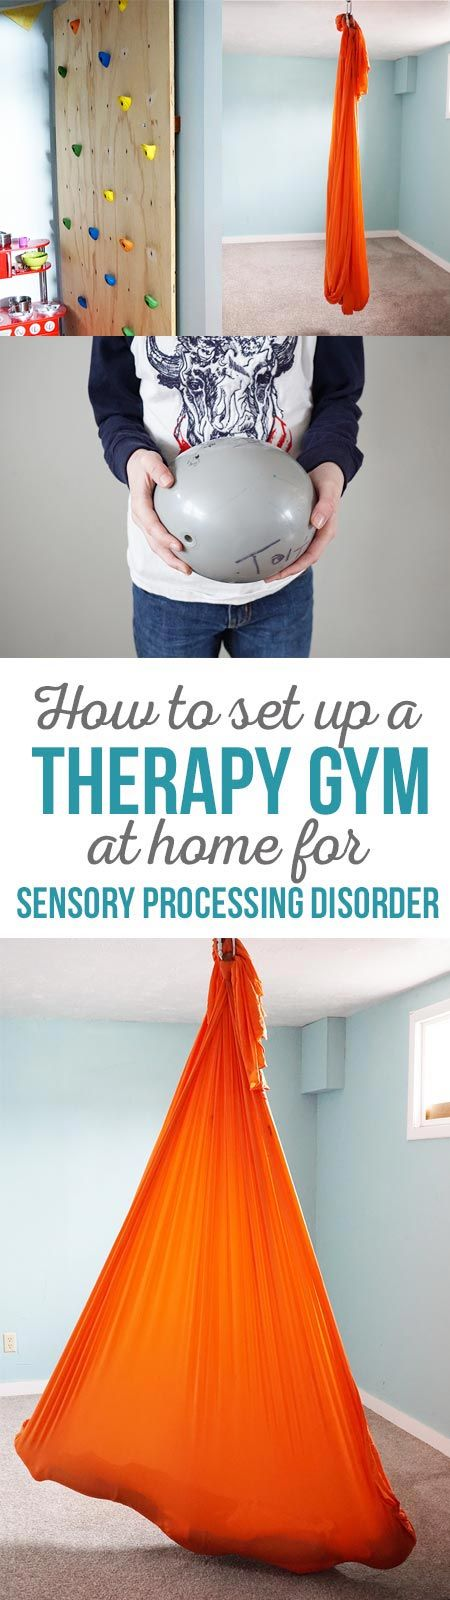 Therapy Gym for SPD -What you need to set up a therapy gym at home for sensory processing disorder.